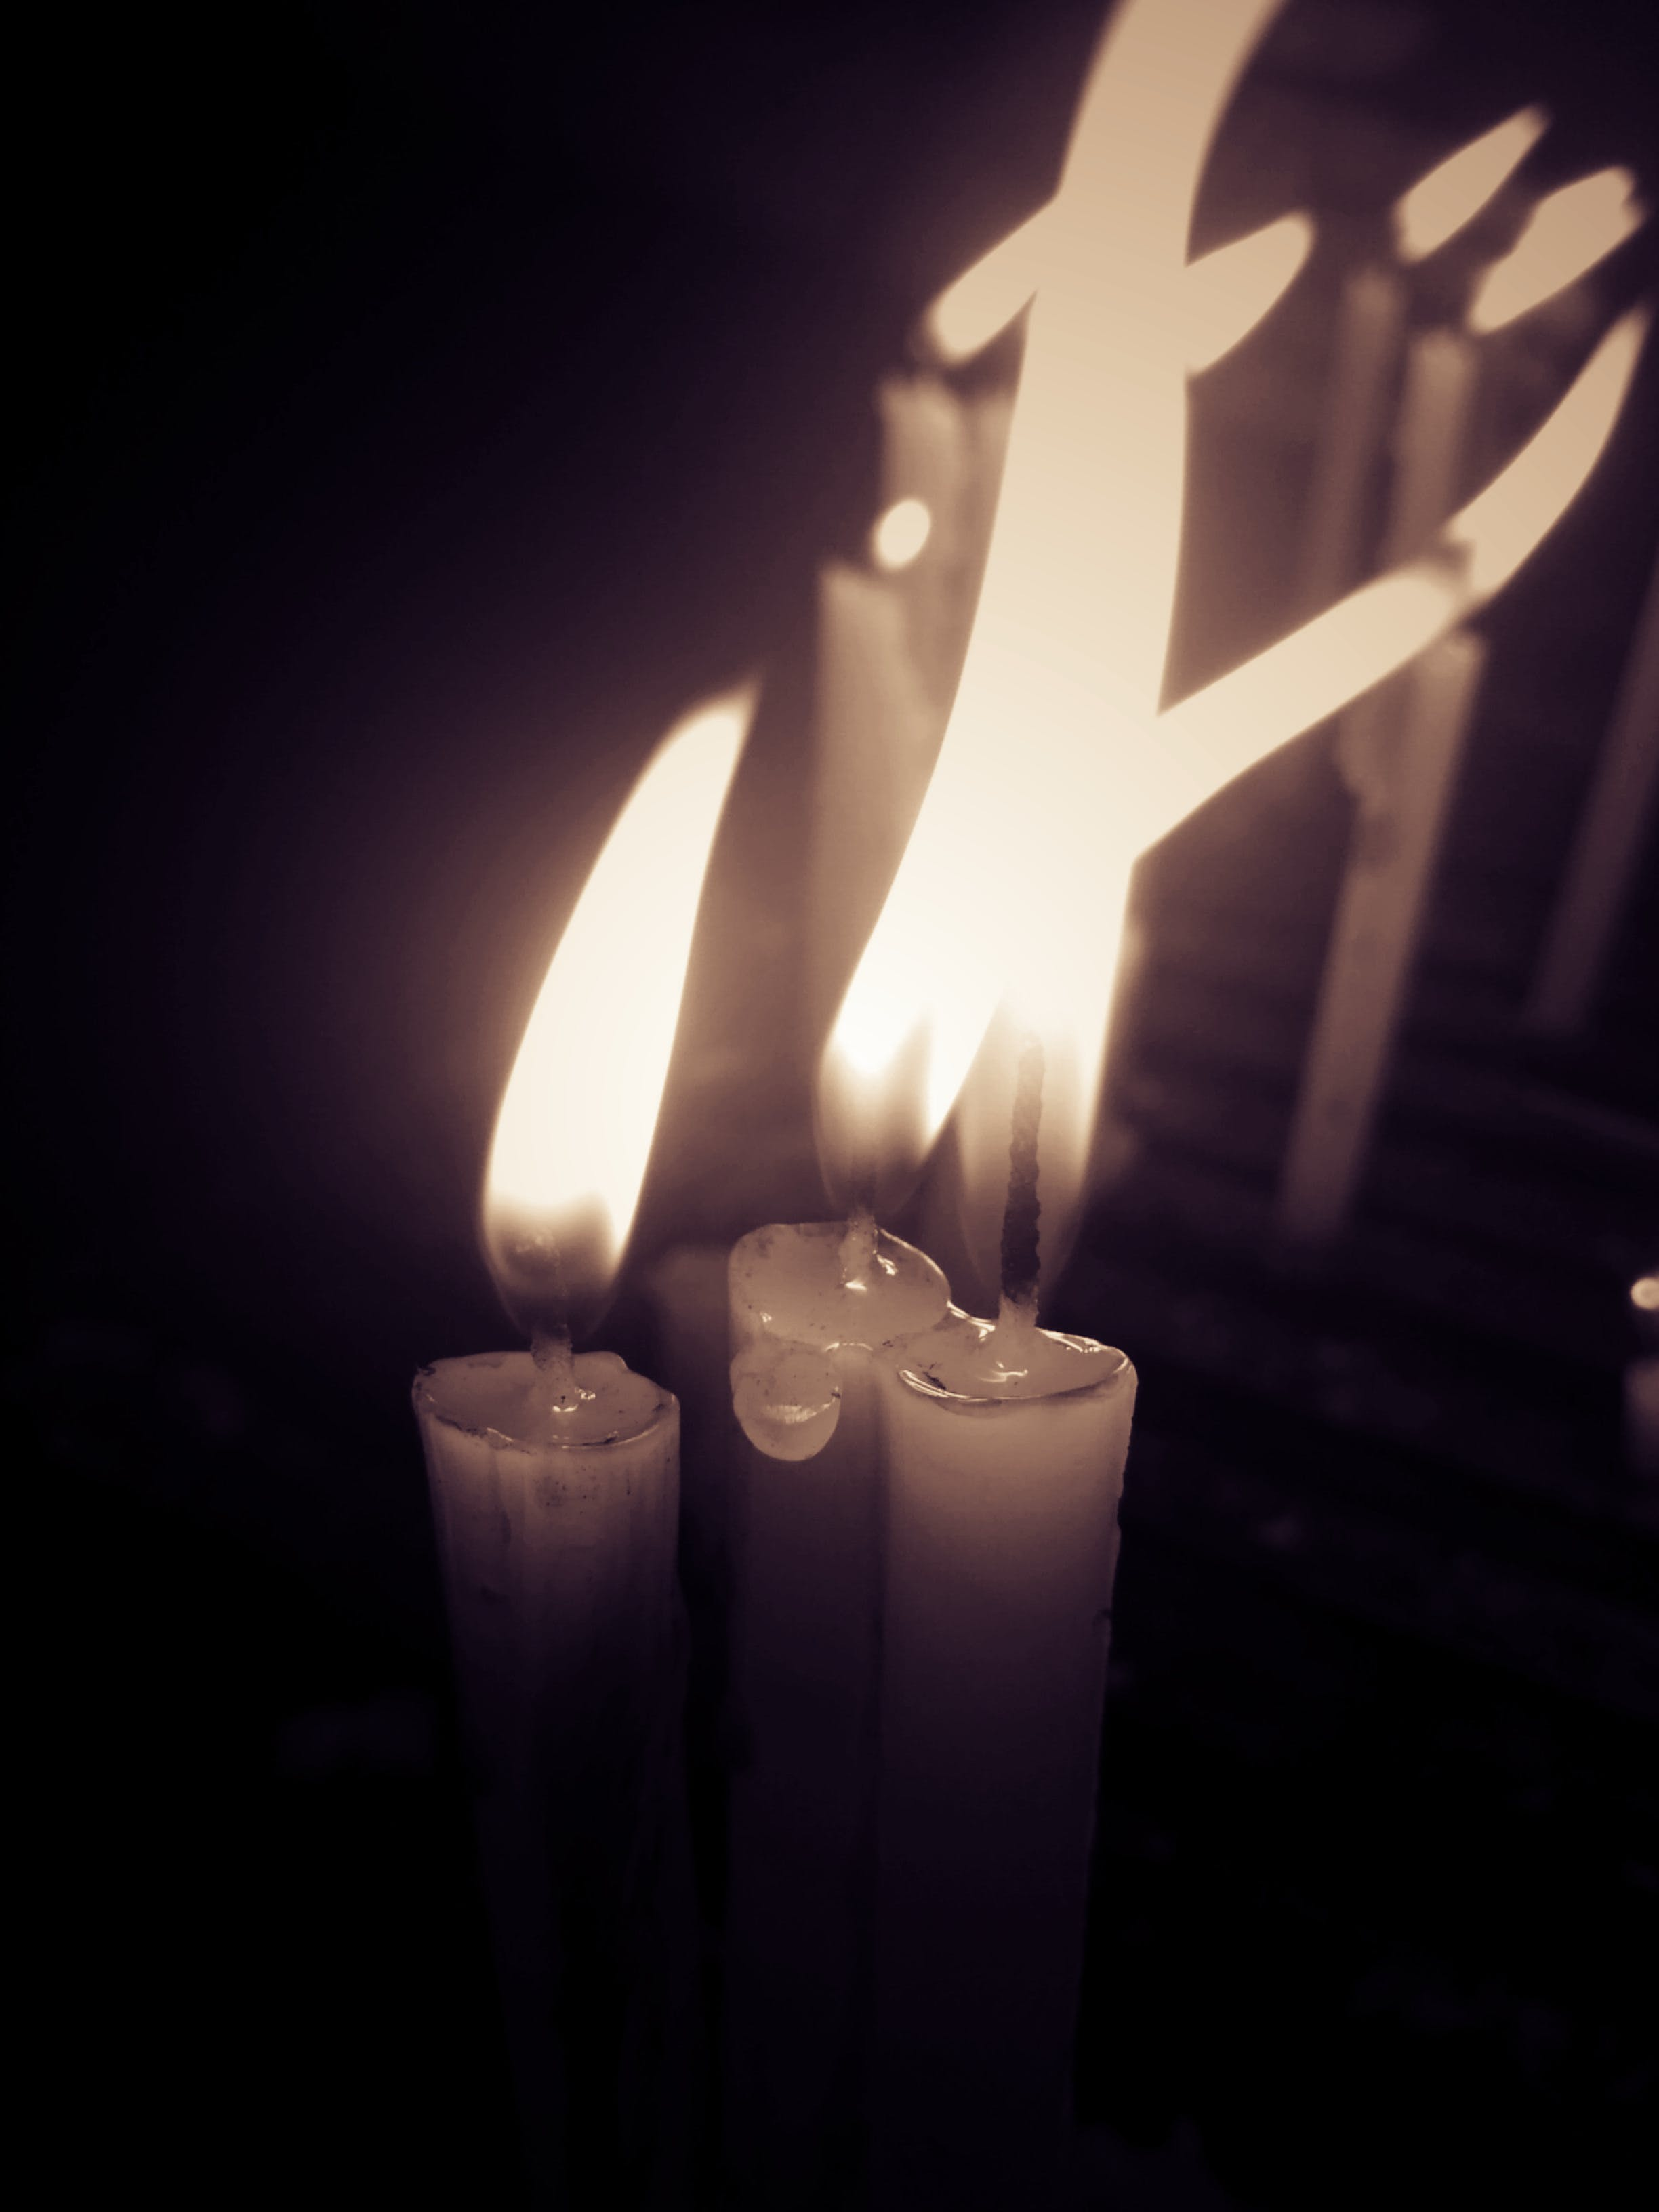 Free stock photo of candle, Candlelights, fire, light